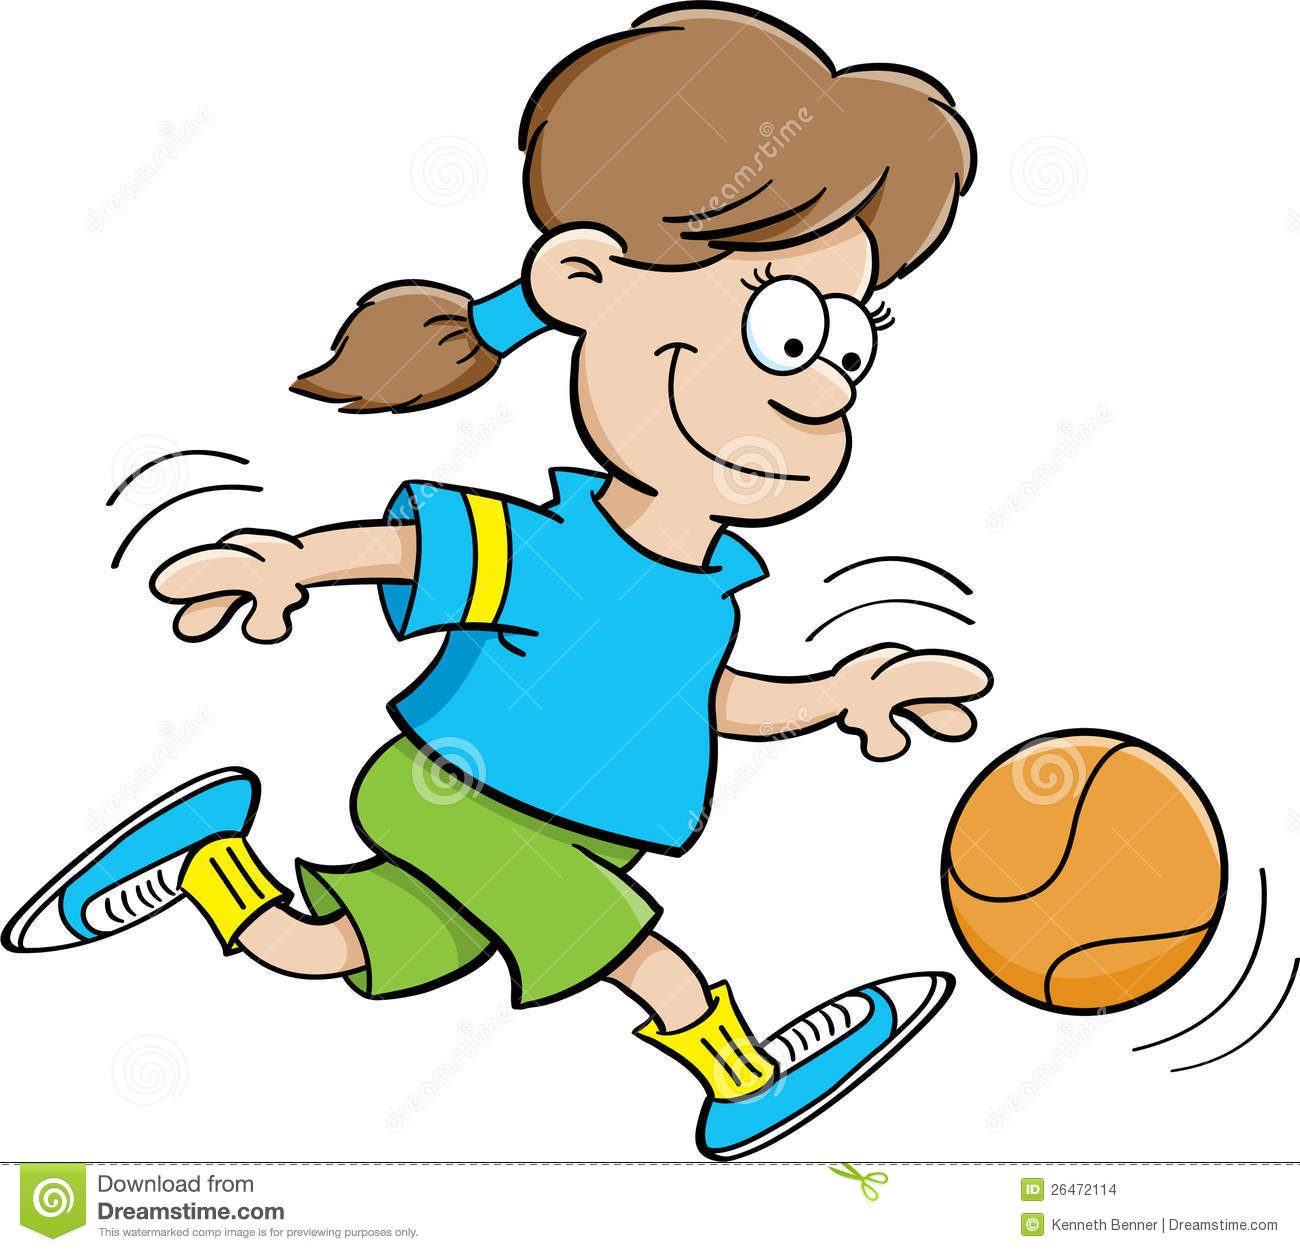 Vector Of A Cartoon Boy Running Track Coloring Page Outline By Ron Leishman 14585 besides Images Stock Fille De Basket Ball Image26472114 as well People Silhouettes further Clipart Of An Explorer Boy Running On A Desert Road With A Volcano In The Background By Colematt 335 in addition Stock Vector Cartoon Of Woman Picking Up A Heavy Box It Causes Her Back Pain. on cartoon people running clip art